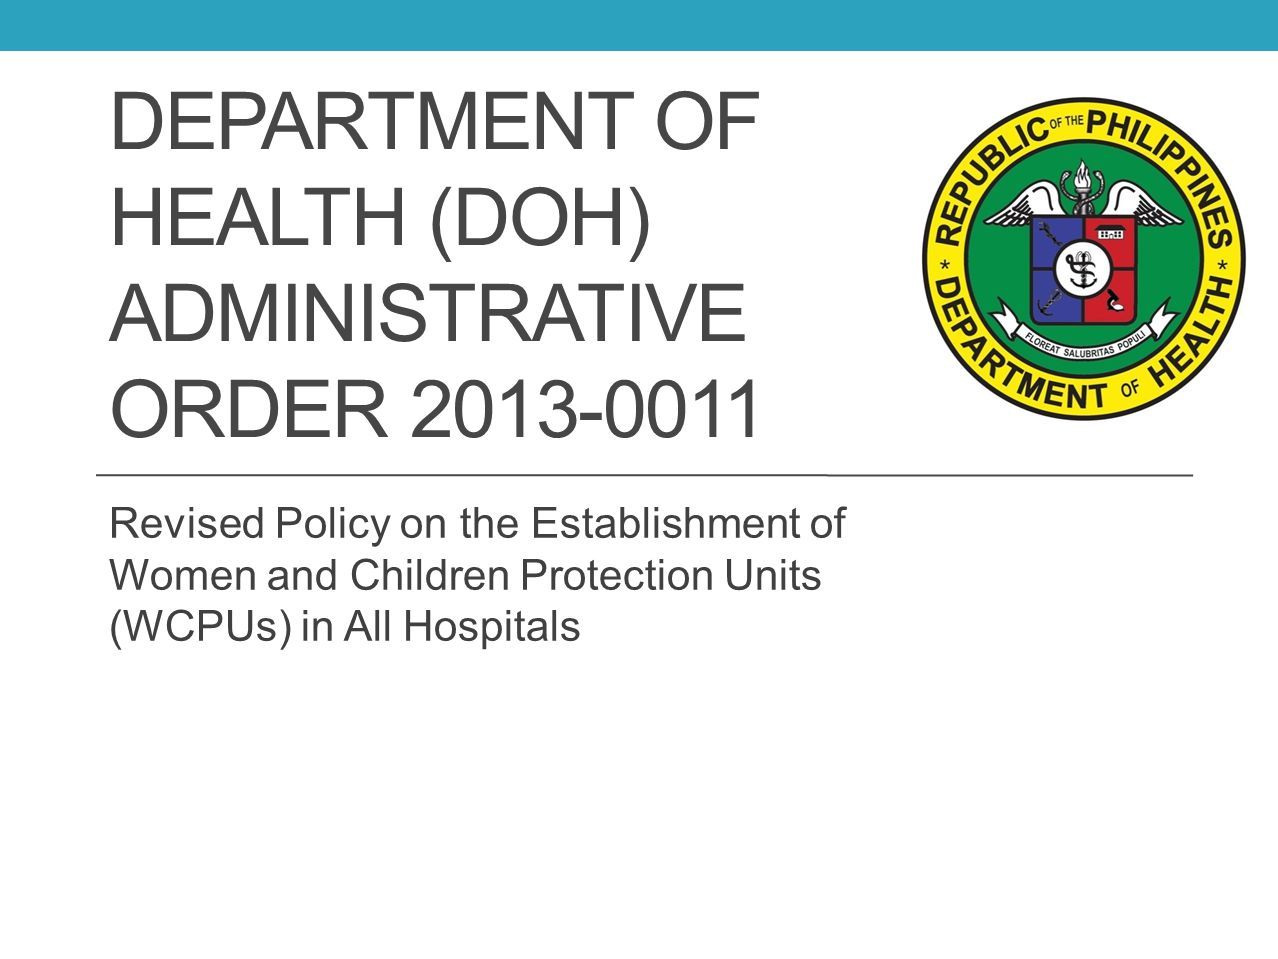 DEPARTMENT OF HEALTH (DOH) ADMINISTRATIVE ORDER 2013-0011 Revised Policy on the Establishment of Women and Children Protection Units (WCPUs) in All Ho